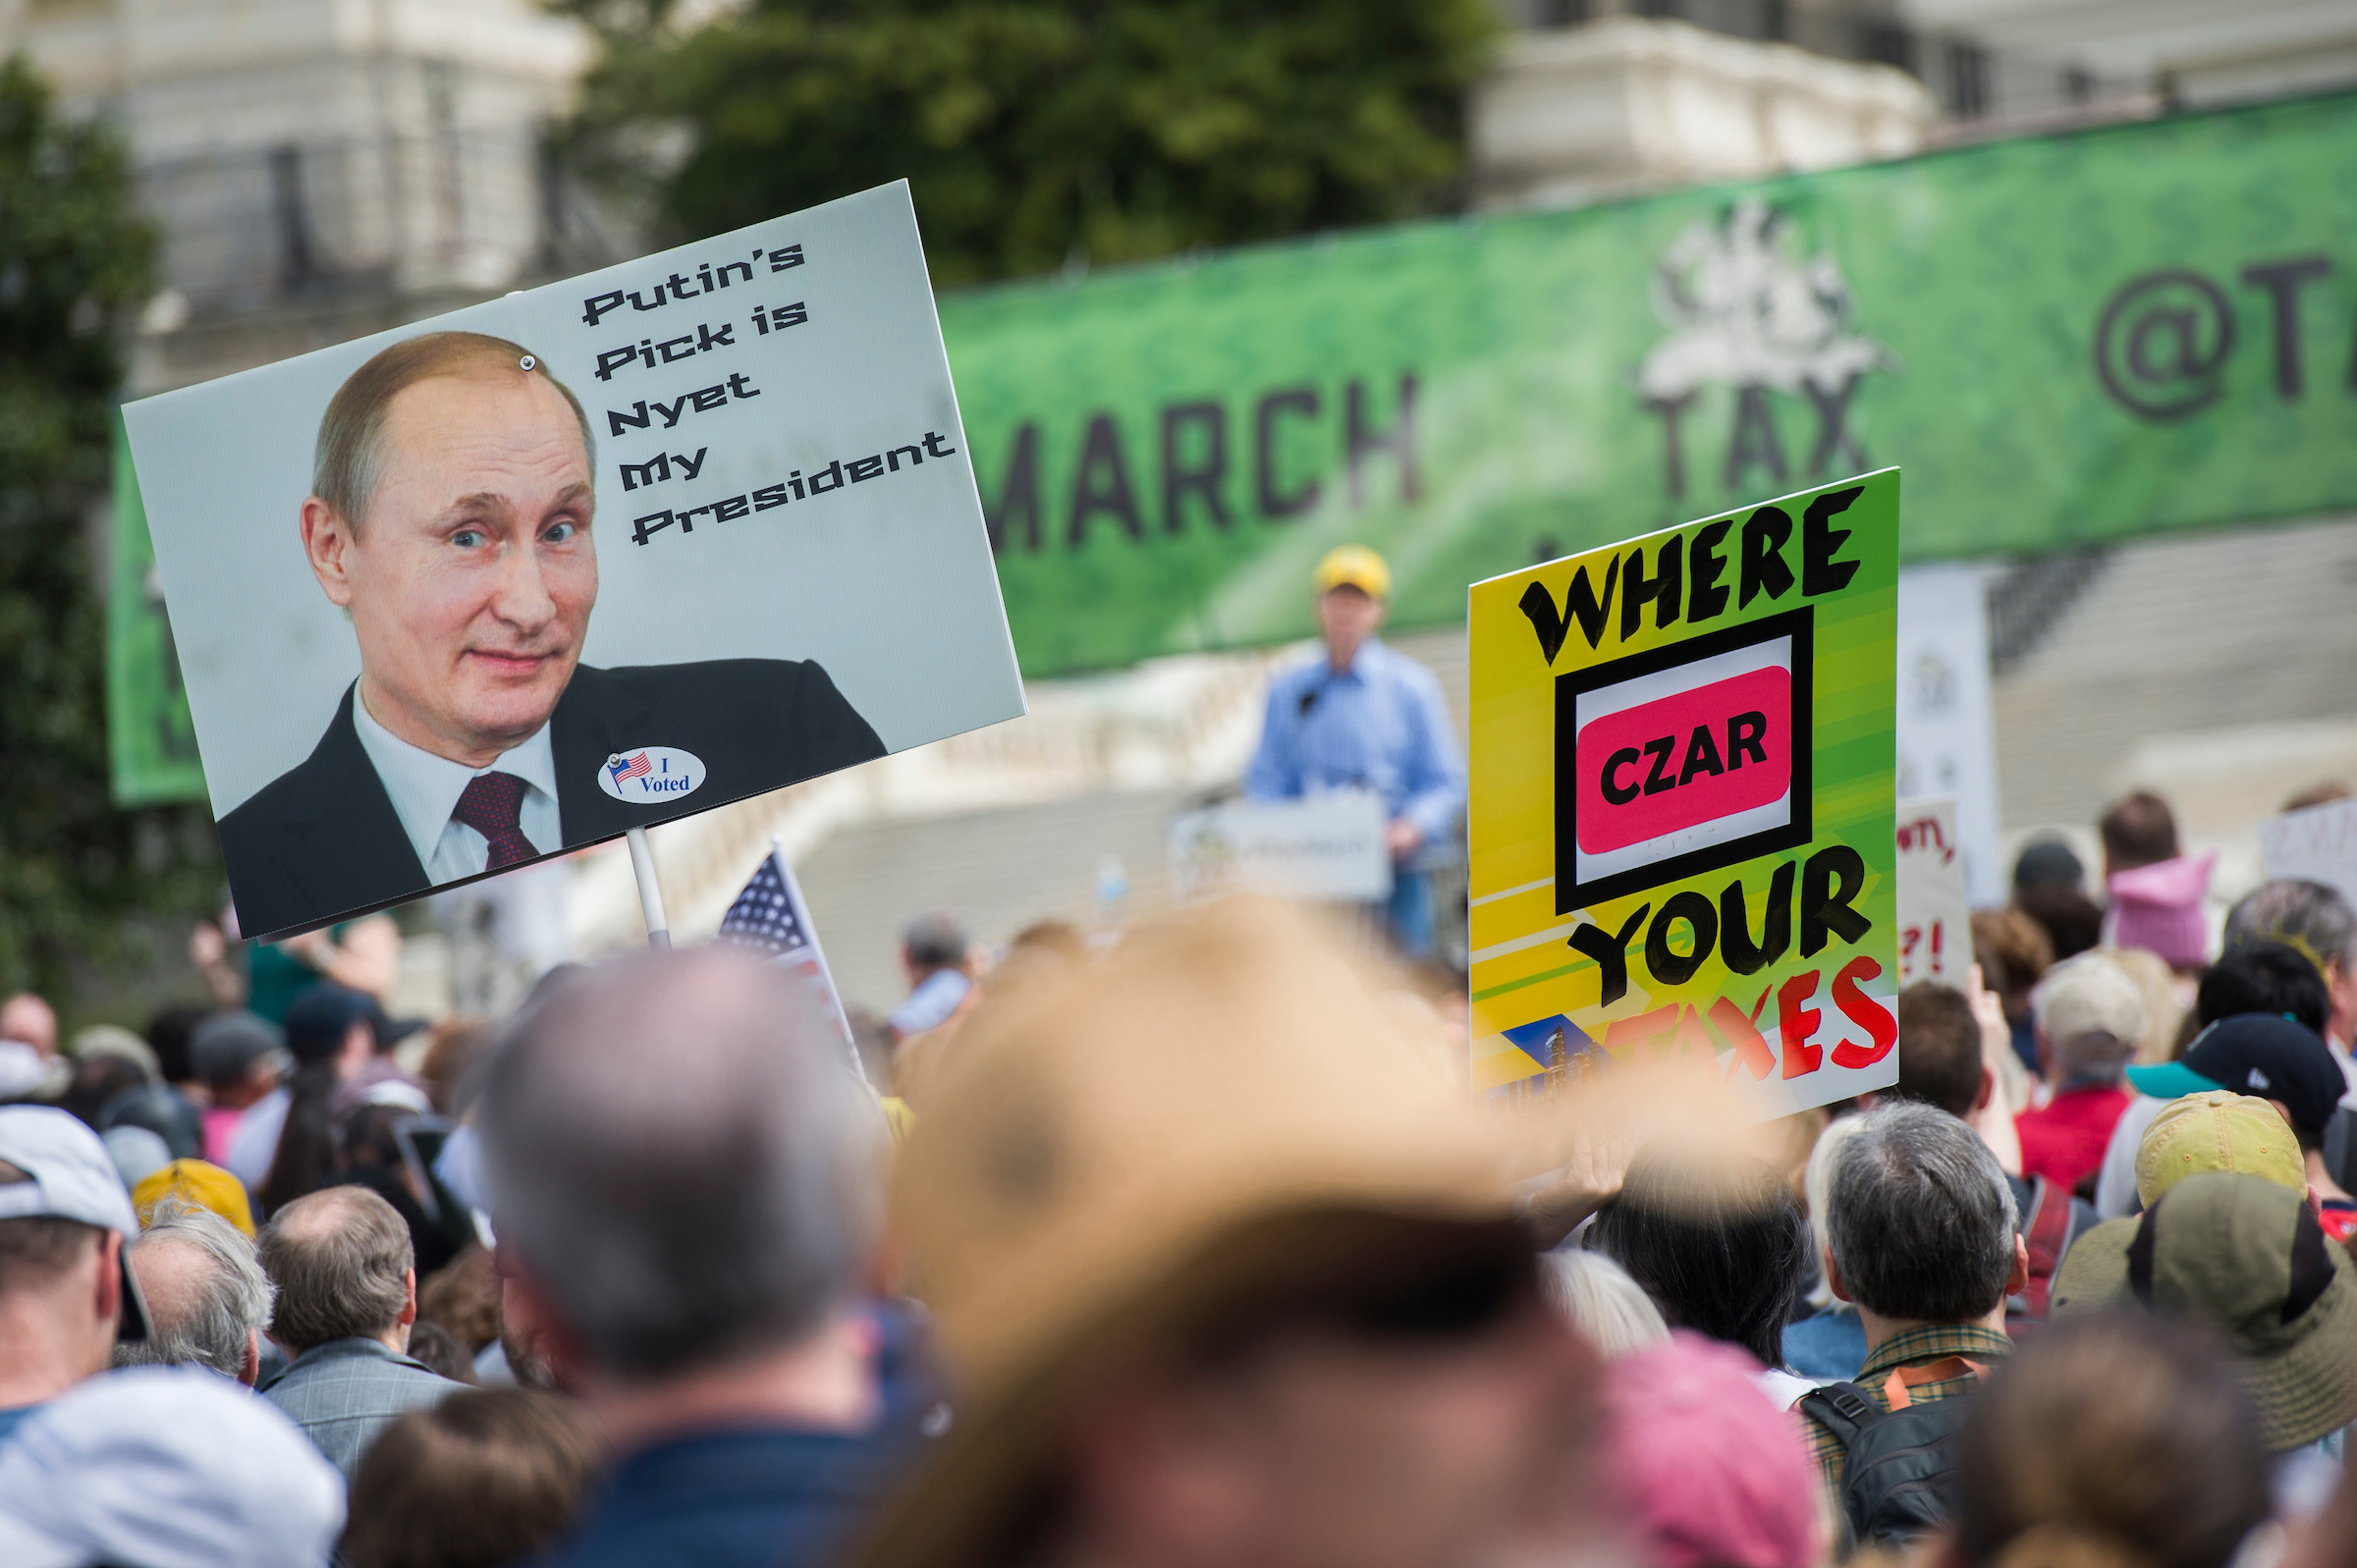 UNITED STATES - APRIL 15: People gather for the Tax March rally on the west lawn of the Capitol to call on President Trump to release his tax returns, April 15, 2017. Sen. Ron Wyden, D-Ore., speaks on stage. (Photo By Tom Williams/CQ Roll Call)